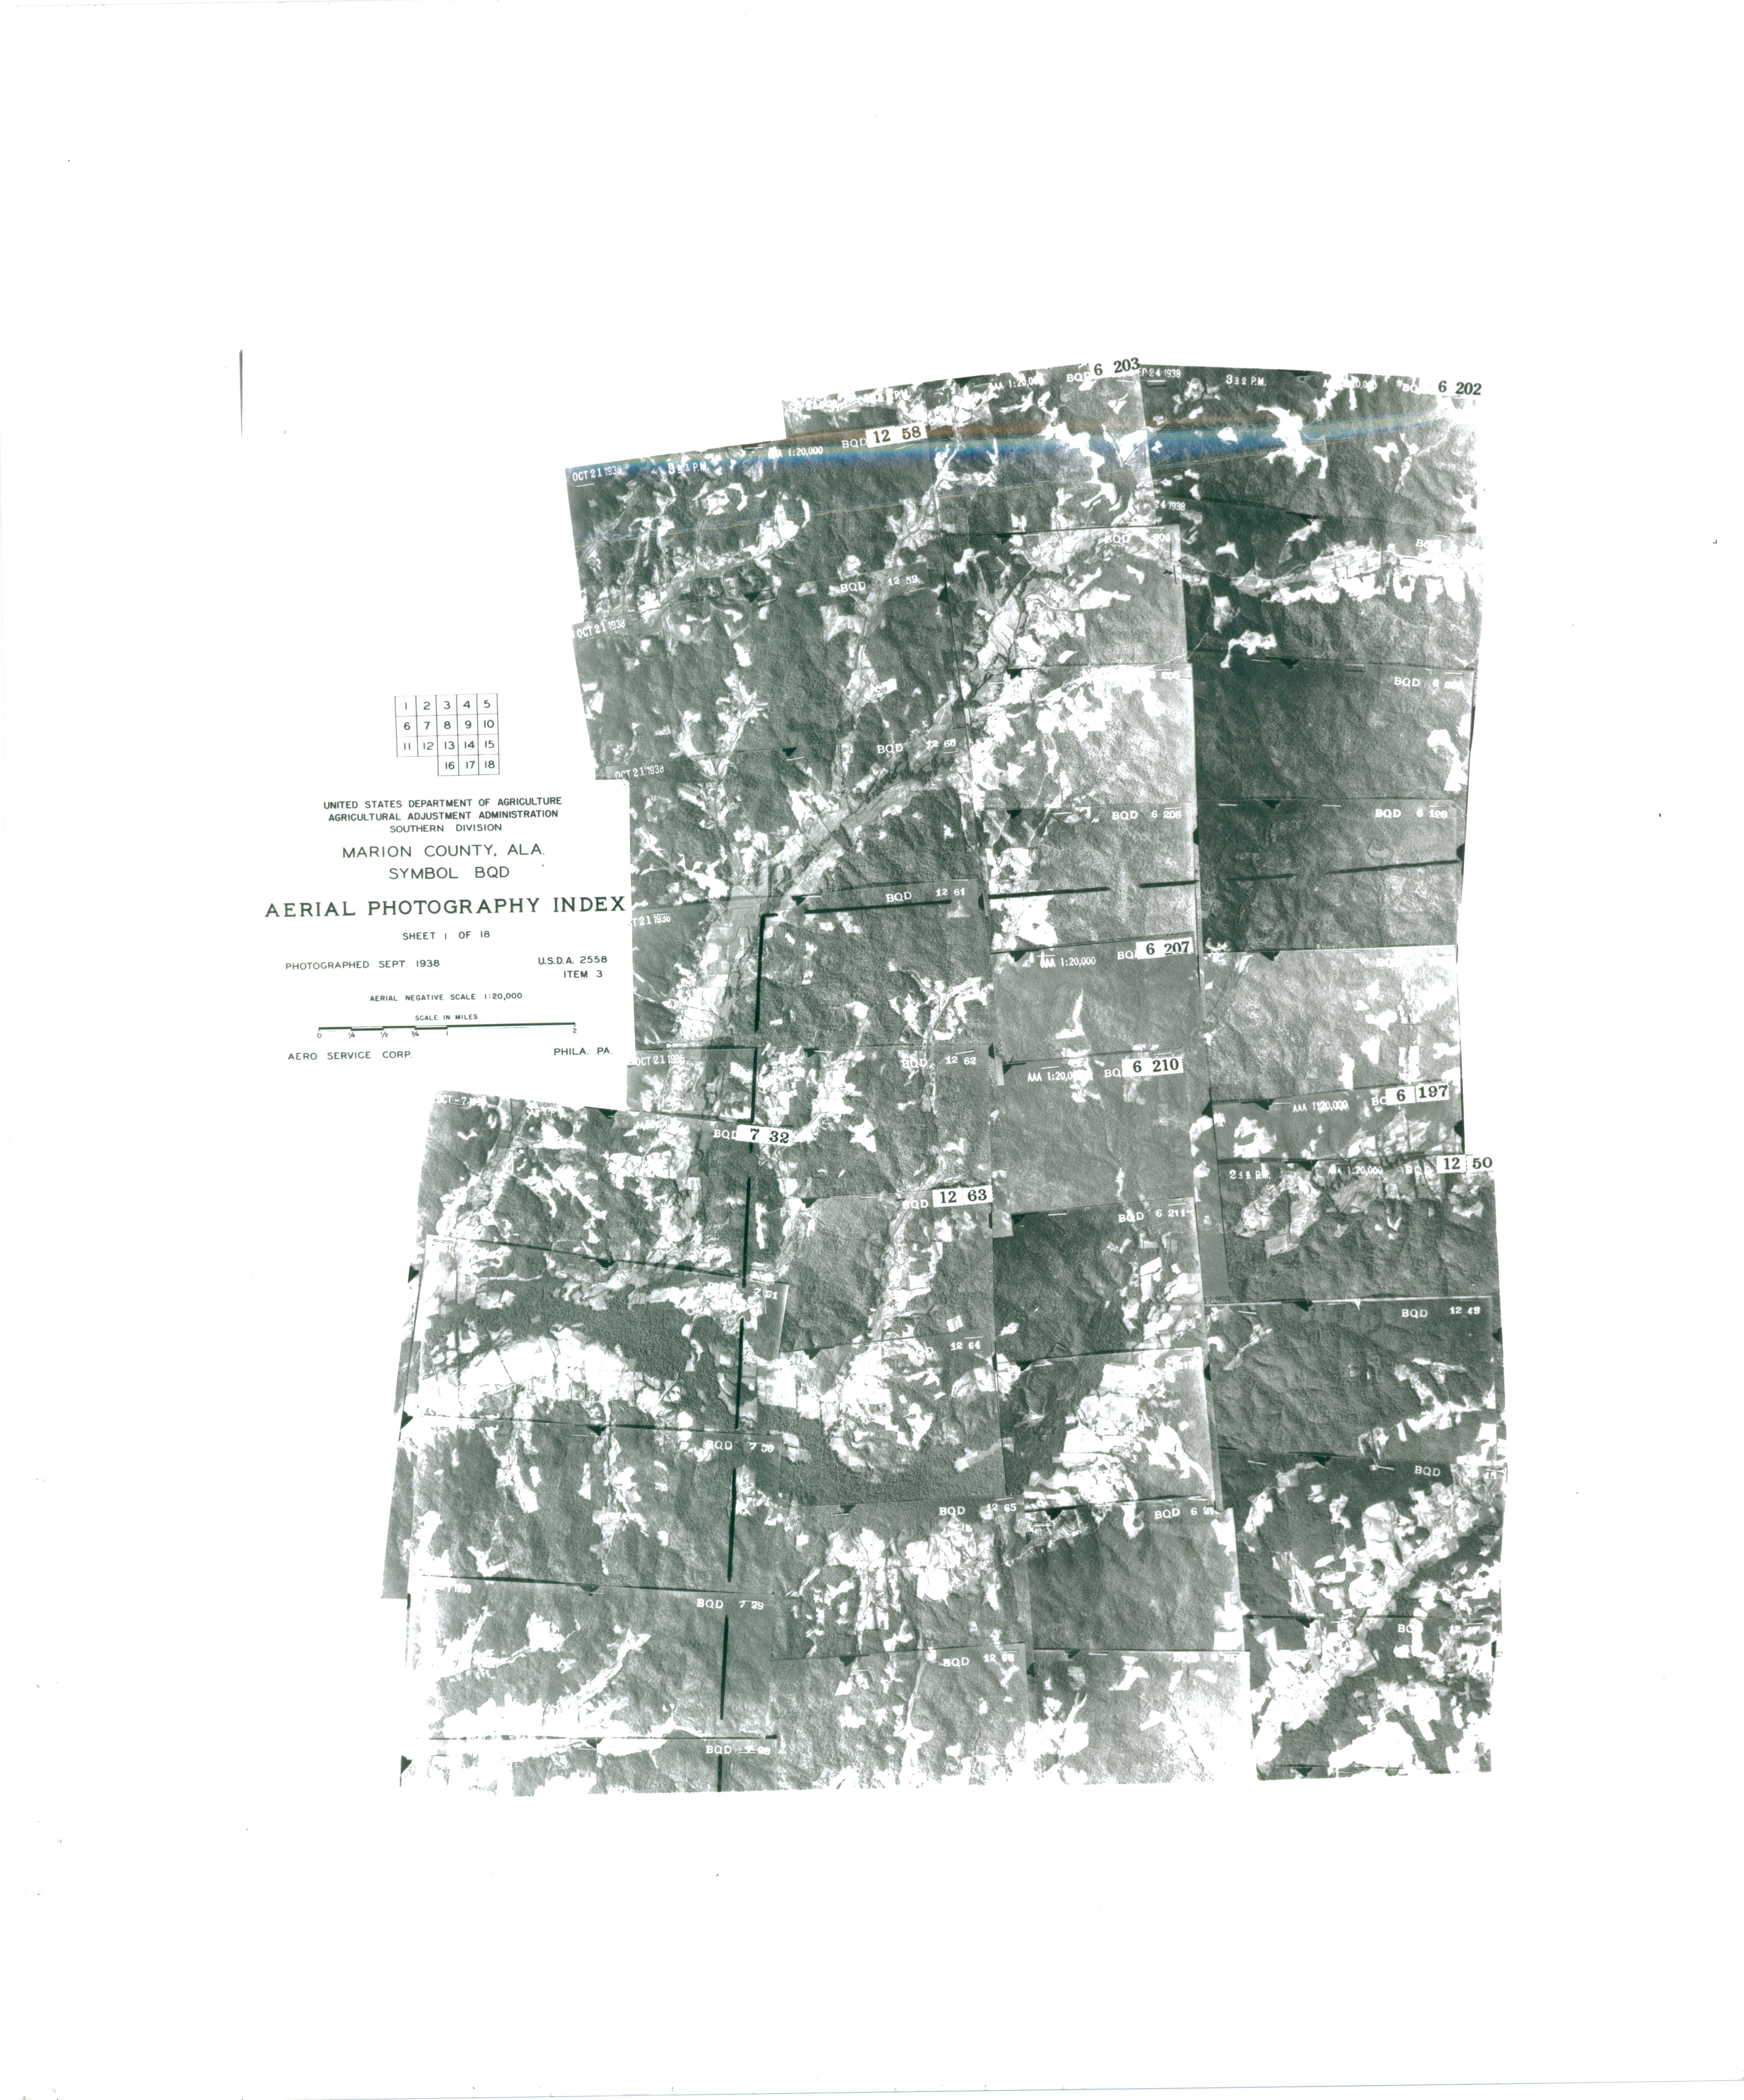 Aerial Photography Index for Marion County, Alabama, Sheet 1